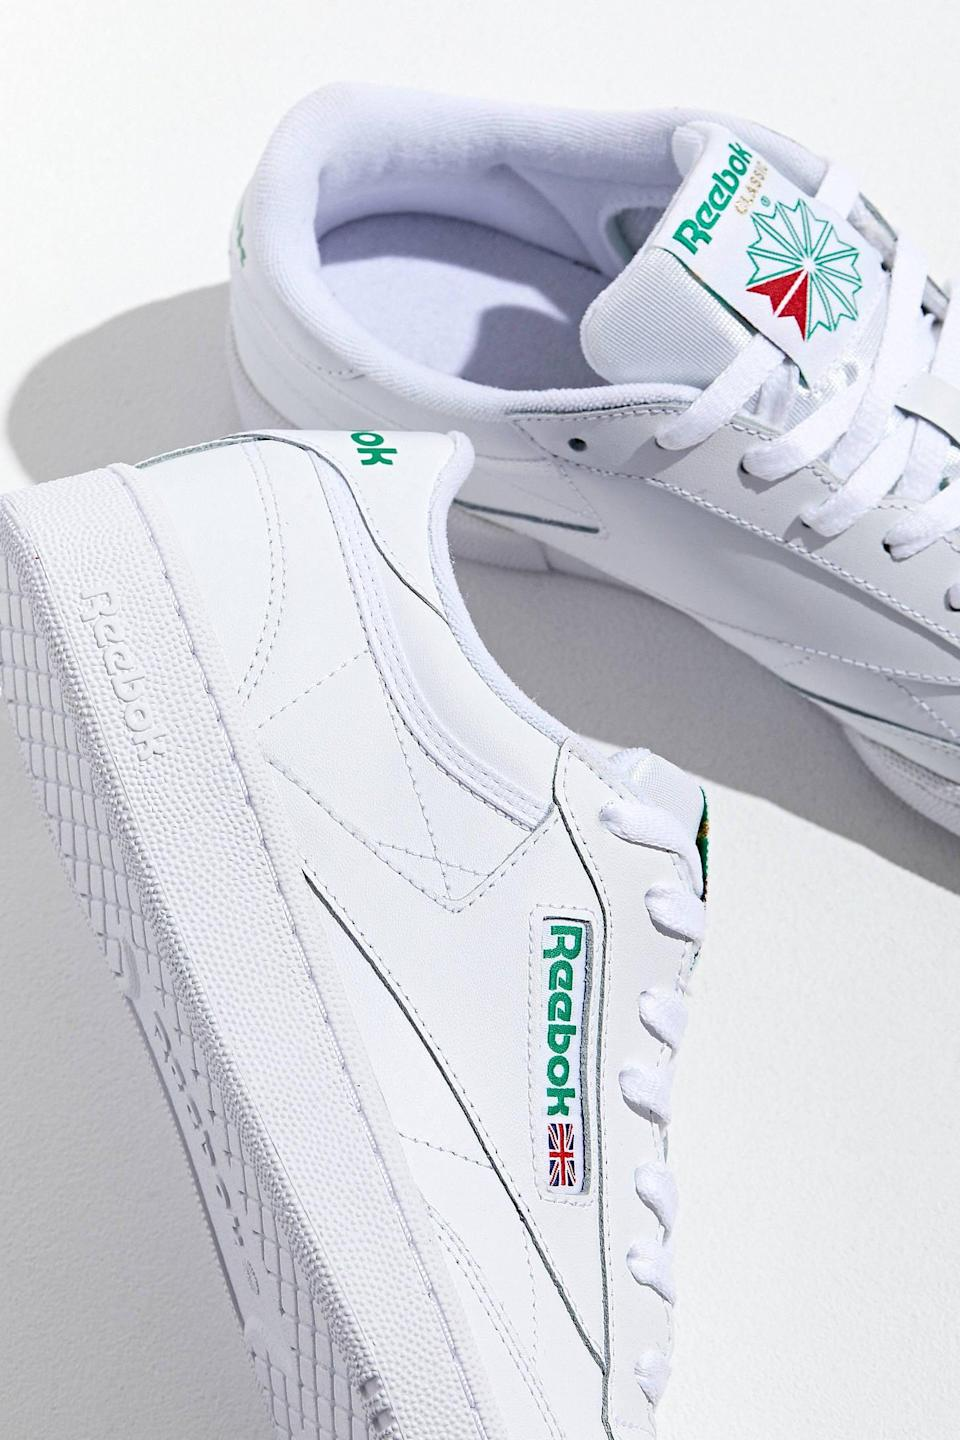 "<p><span>Reebok Club C 85 Sneakers</span> ($70)</p> <p>""If like me, you can't stop buying white sneakers, may I suggest you add these Reebok vintage ones to your collection? They are so comfortable and versatile."" - Alessandra Foresto, deputy editor</p>"